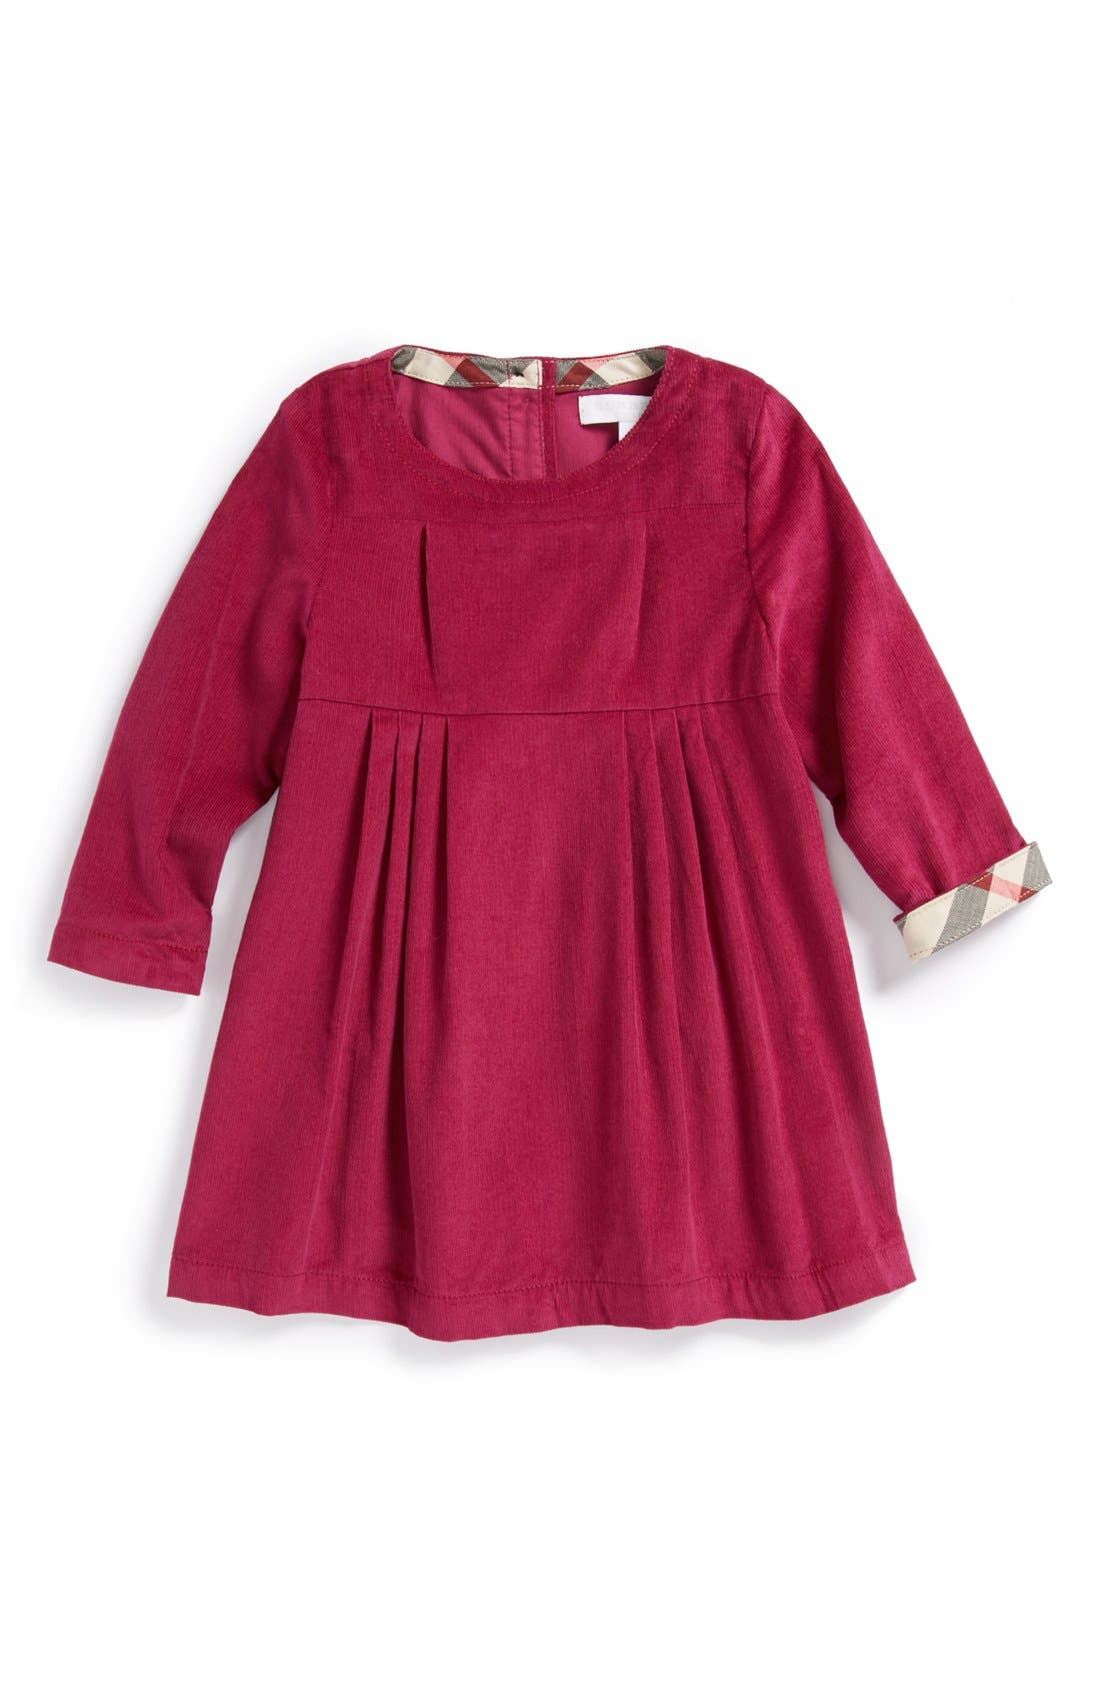 Alternate Image 1 Selected - Burberry 'Rebecca' Corduroy Dress (Baby Girls)